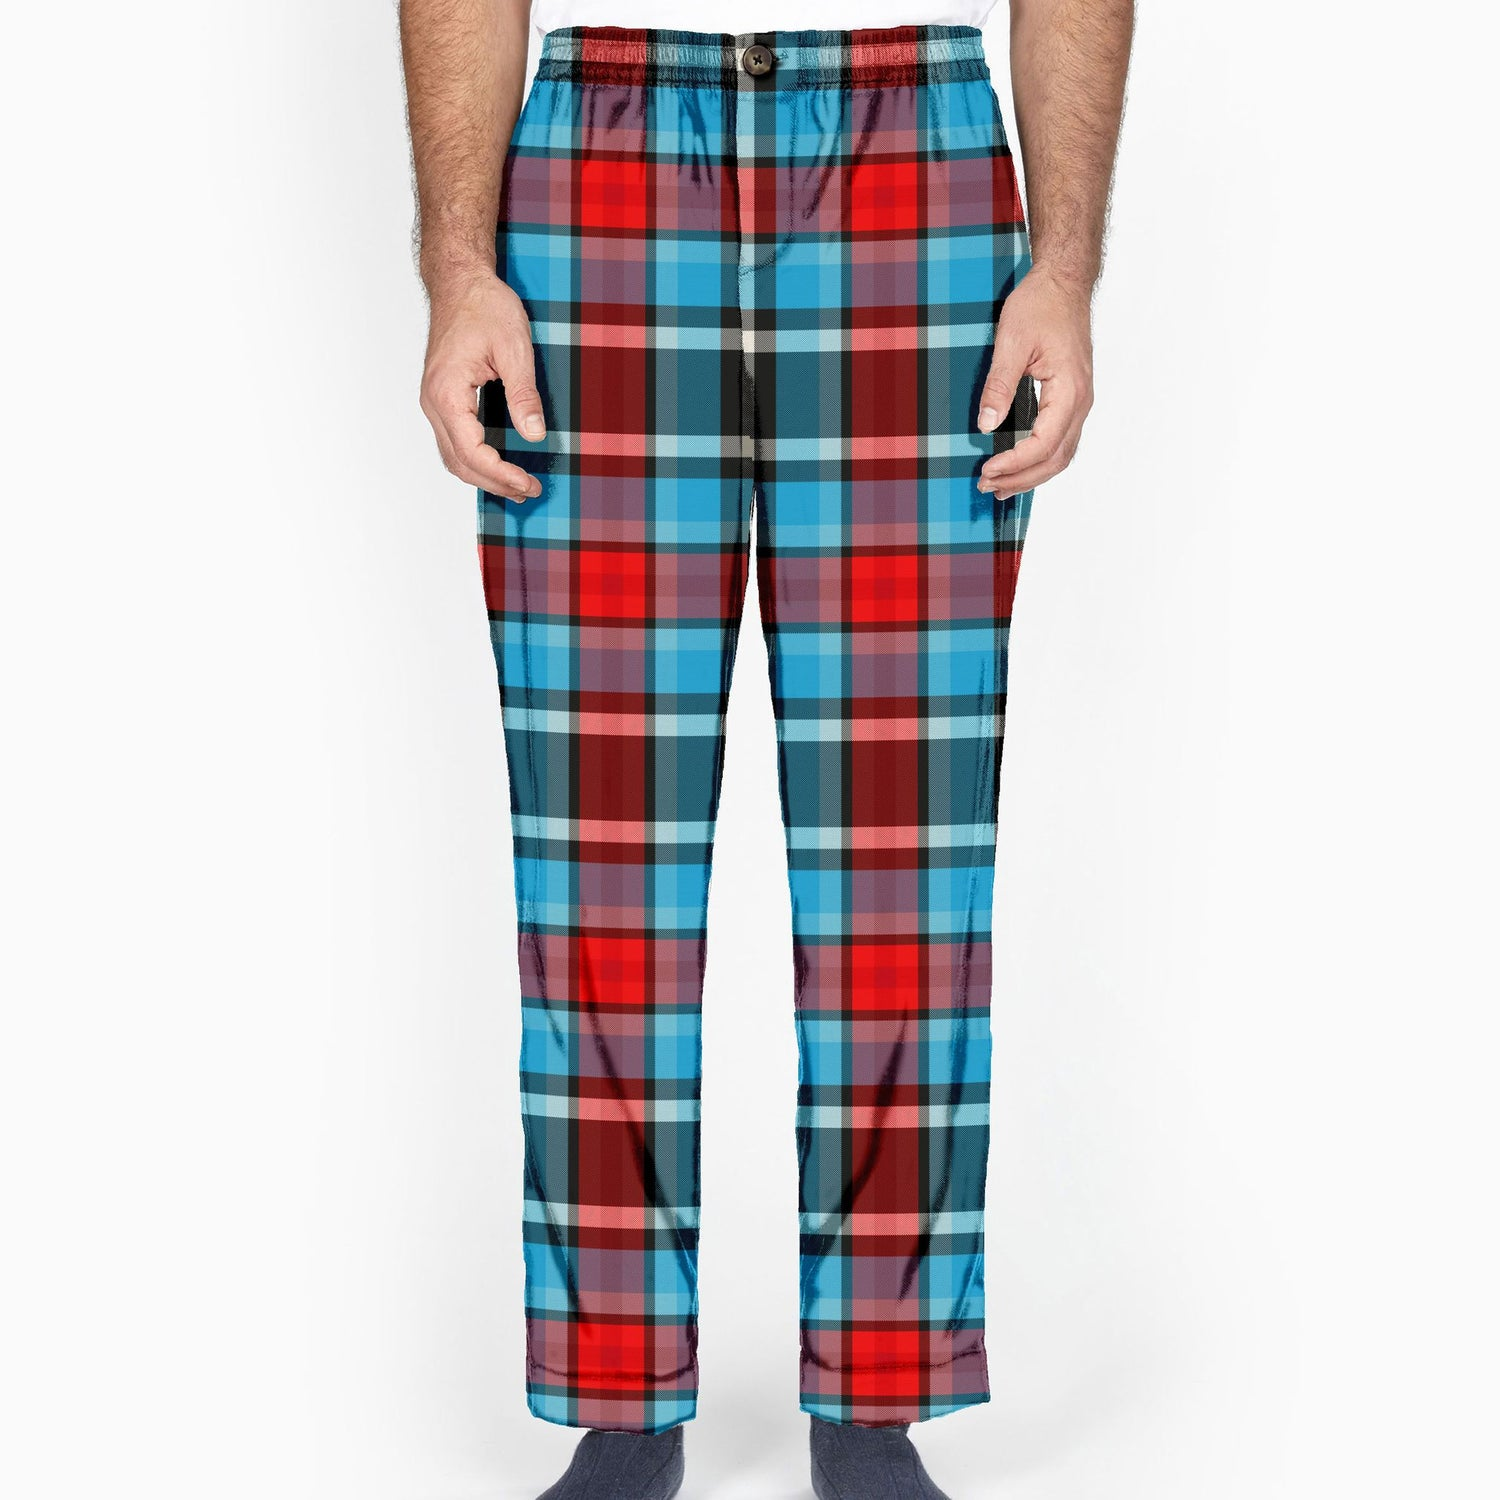 The Remain In Light Plaid Flannel Lounge Pant